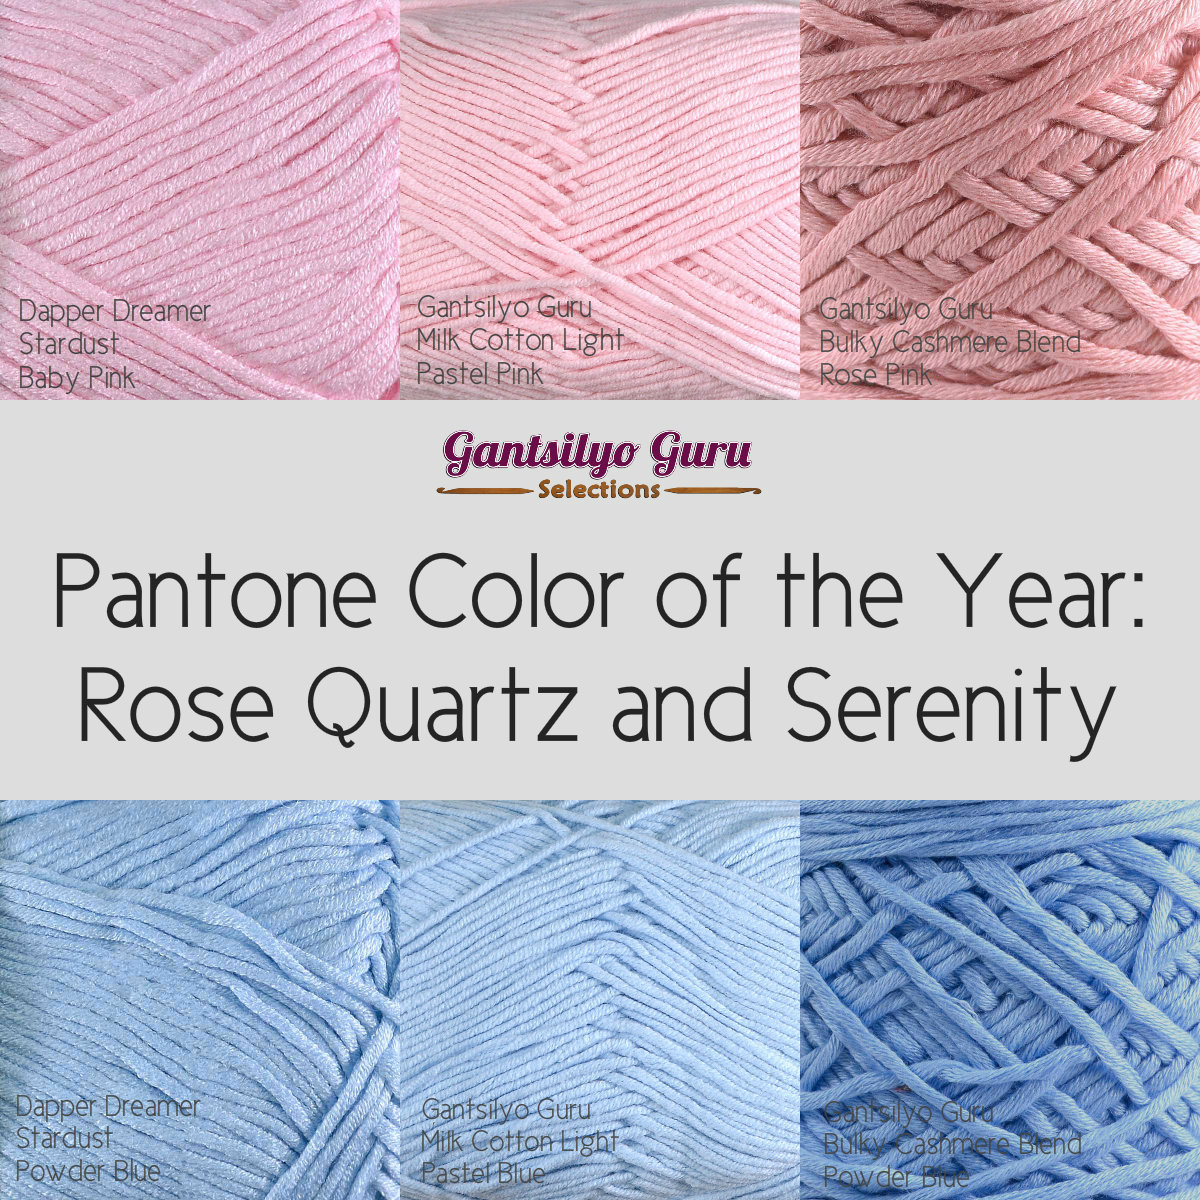 Pantone 2016: Gantsilyo Guru: Pantone Color Of The Year For 2016